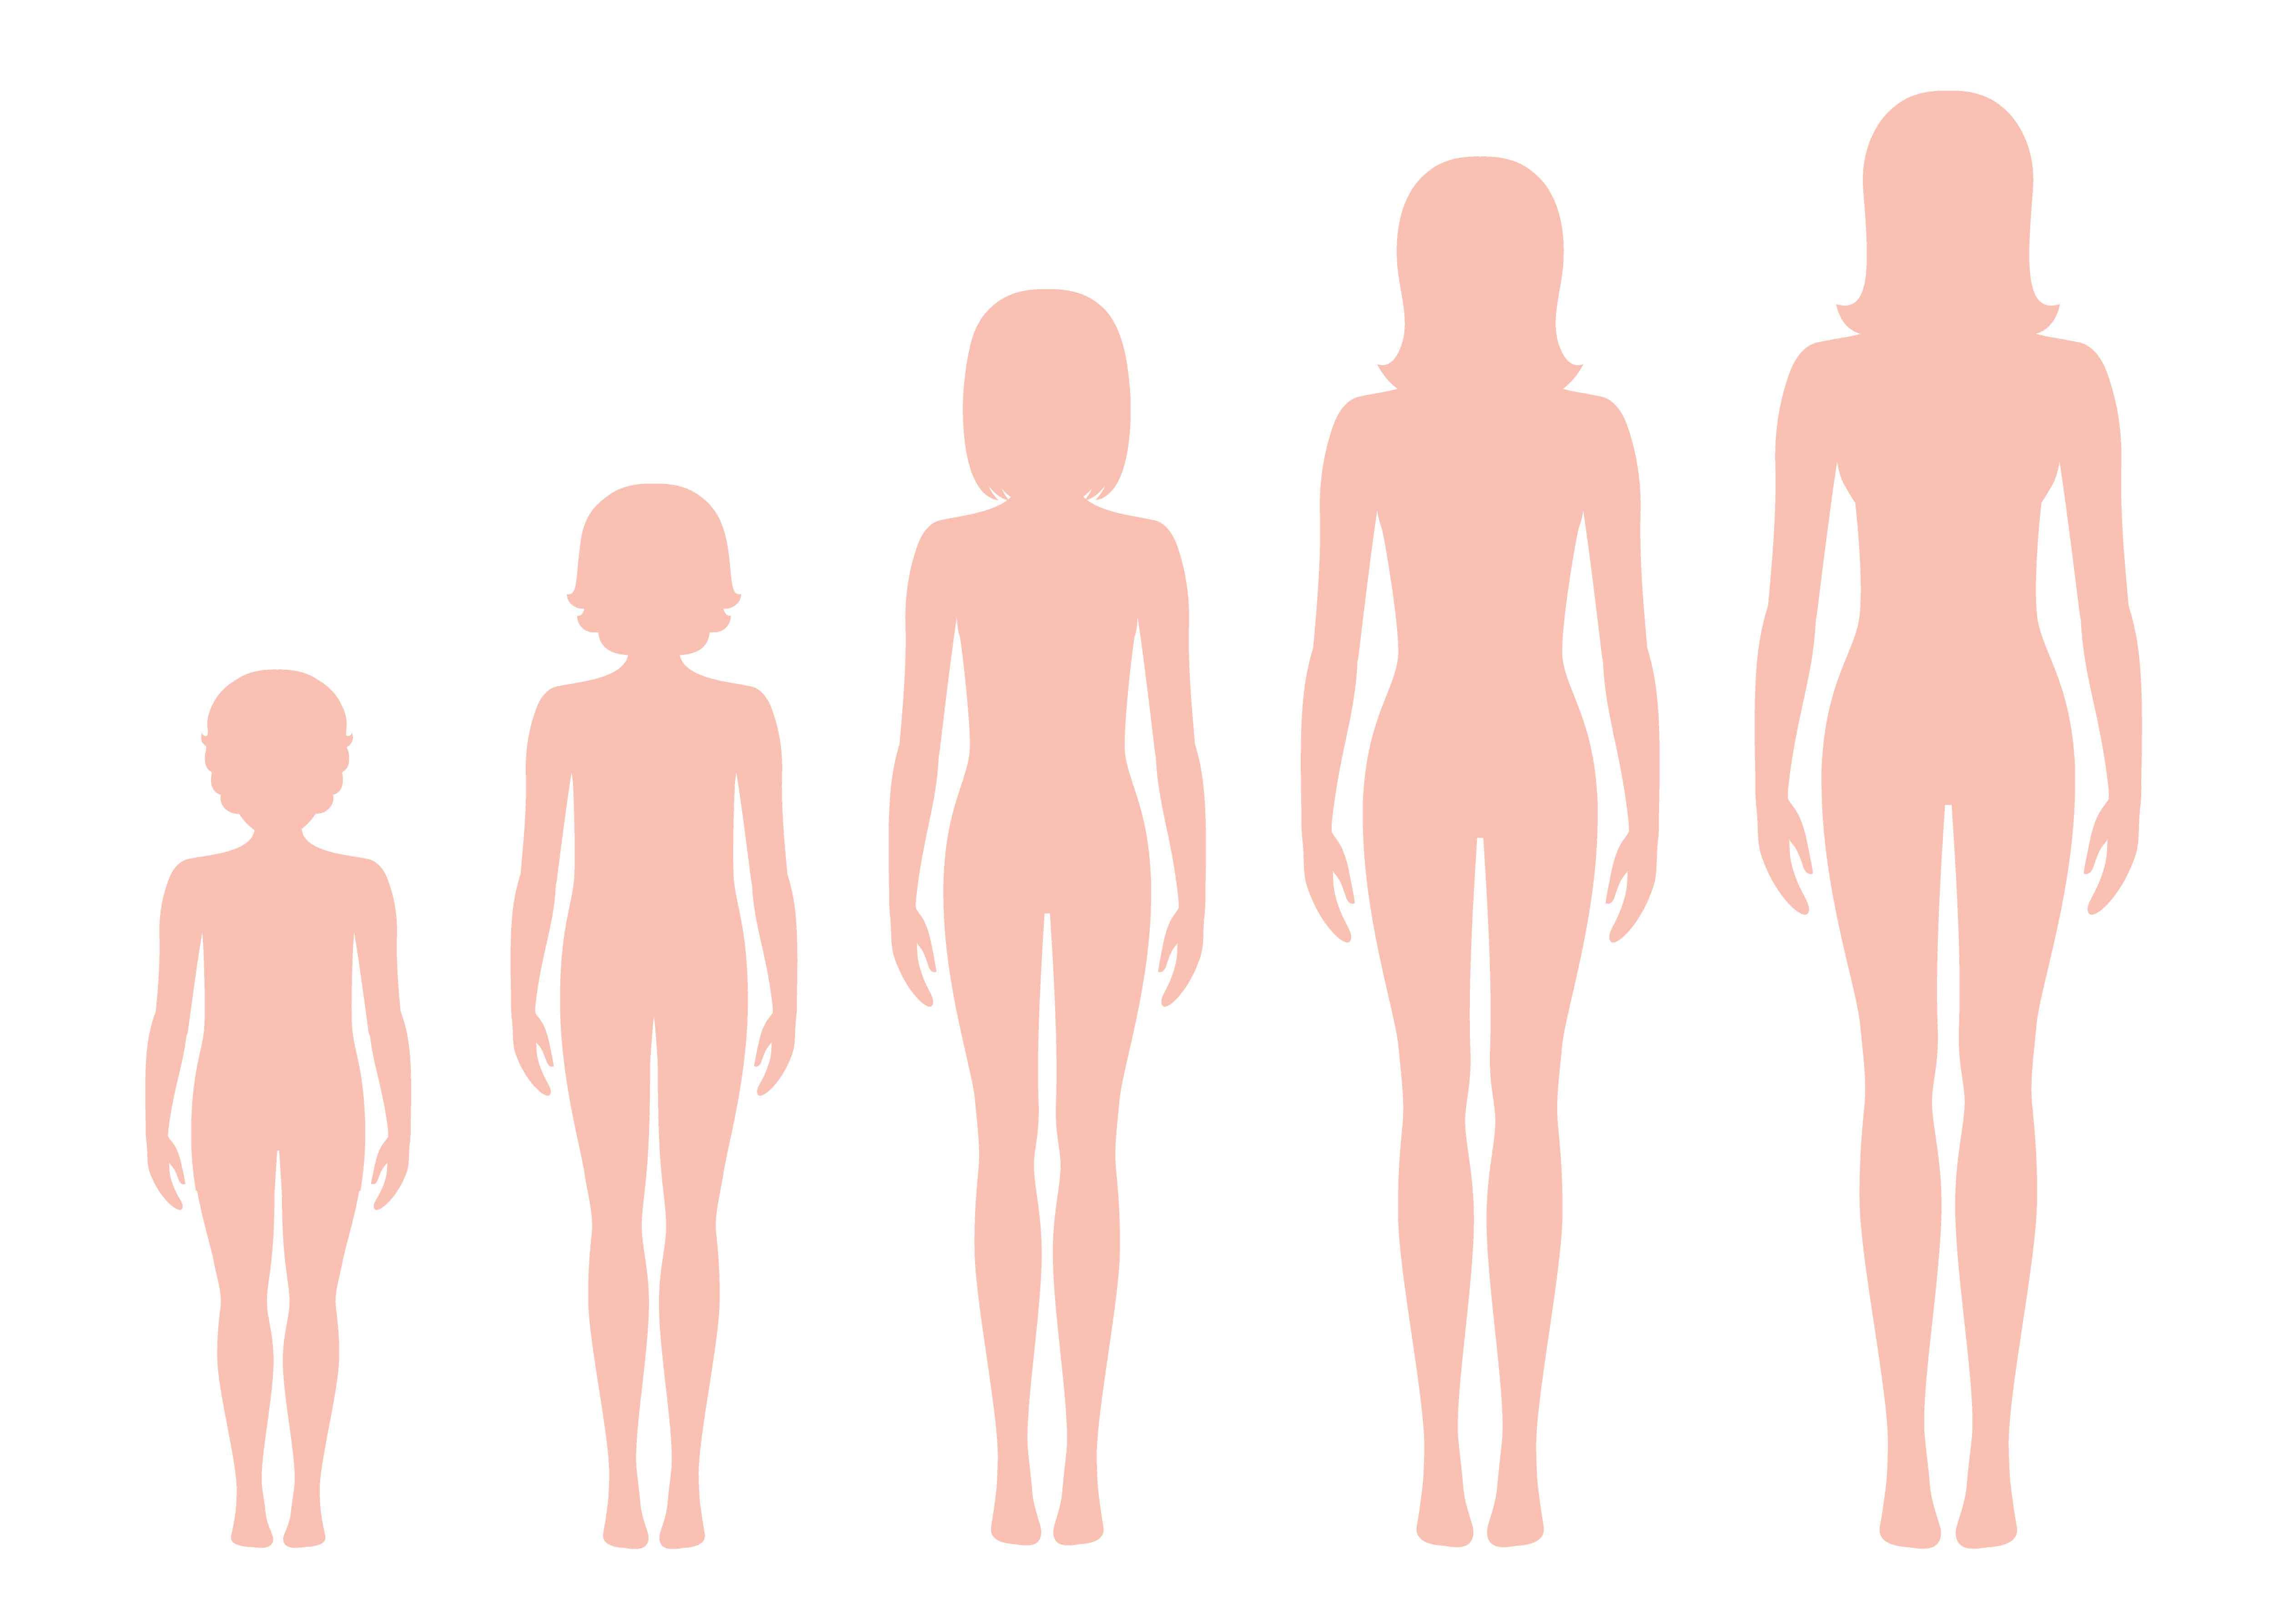 Moms girls pussy growth chart pulsating